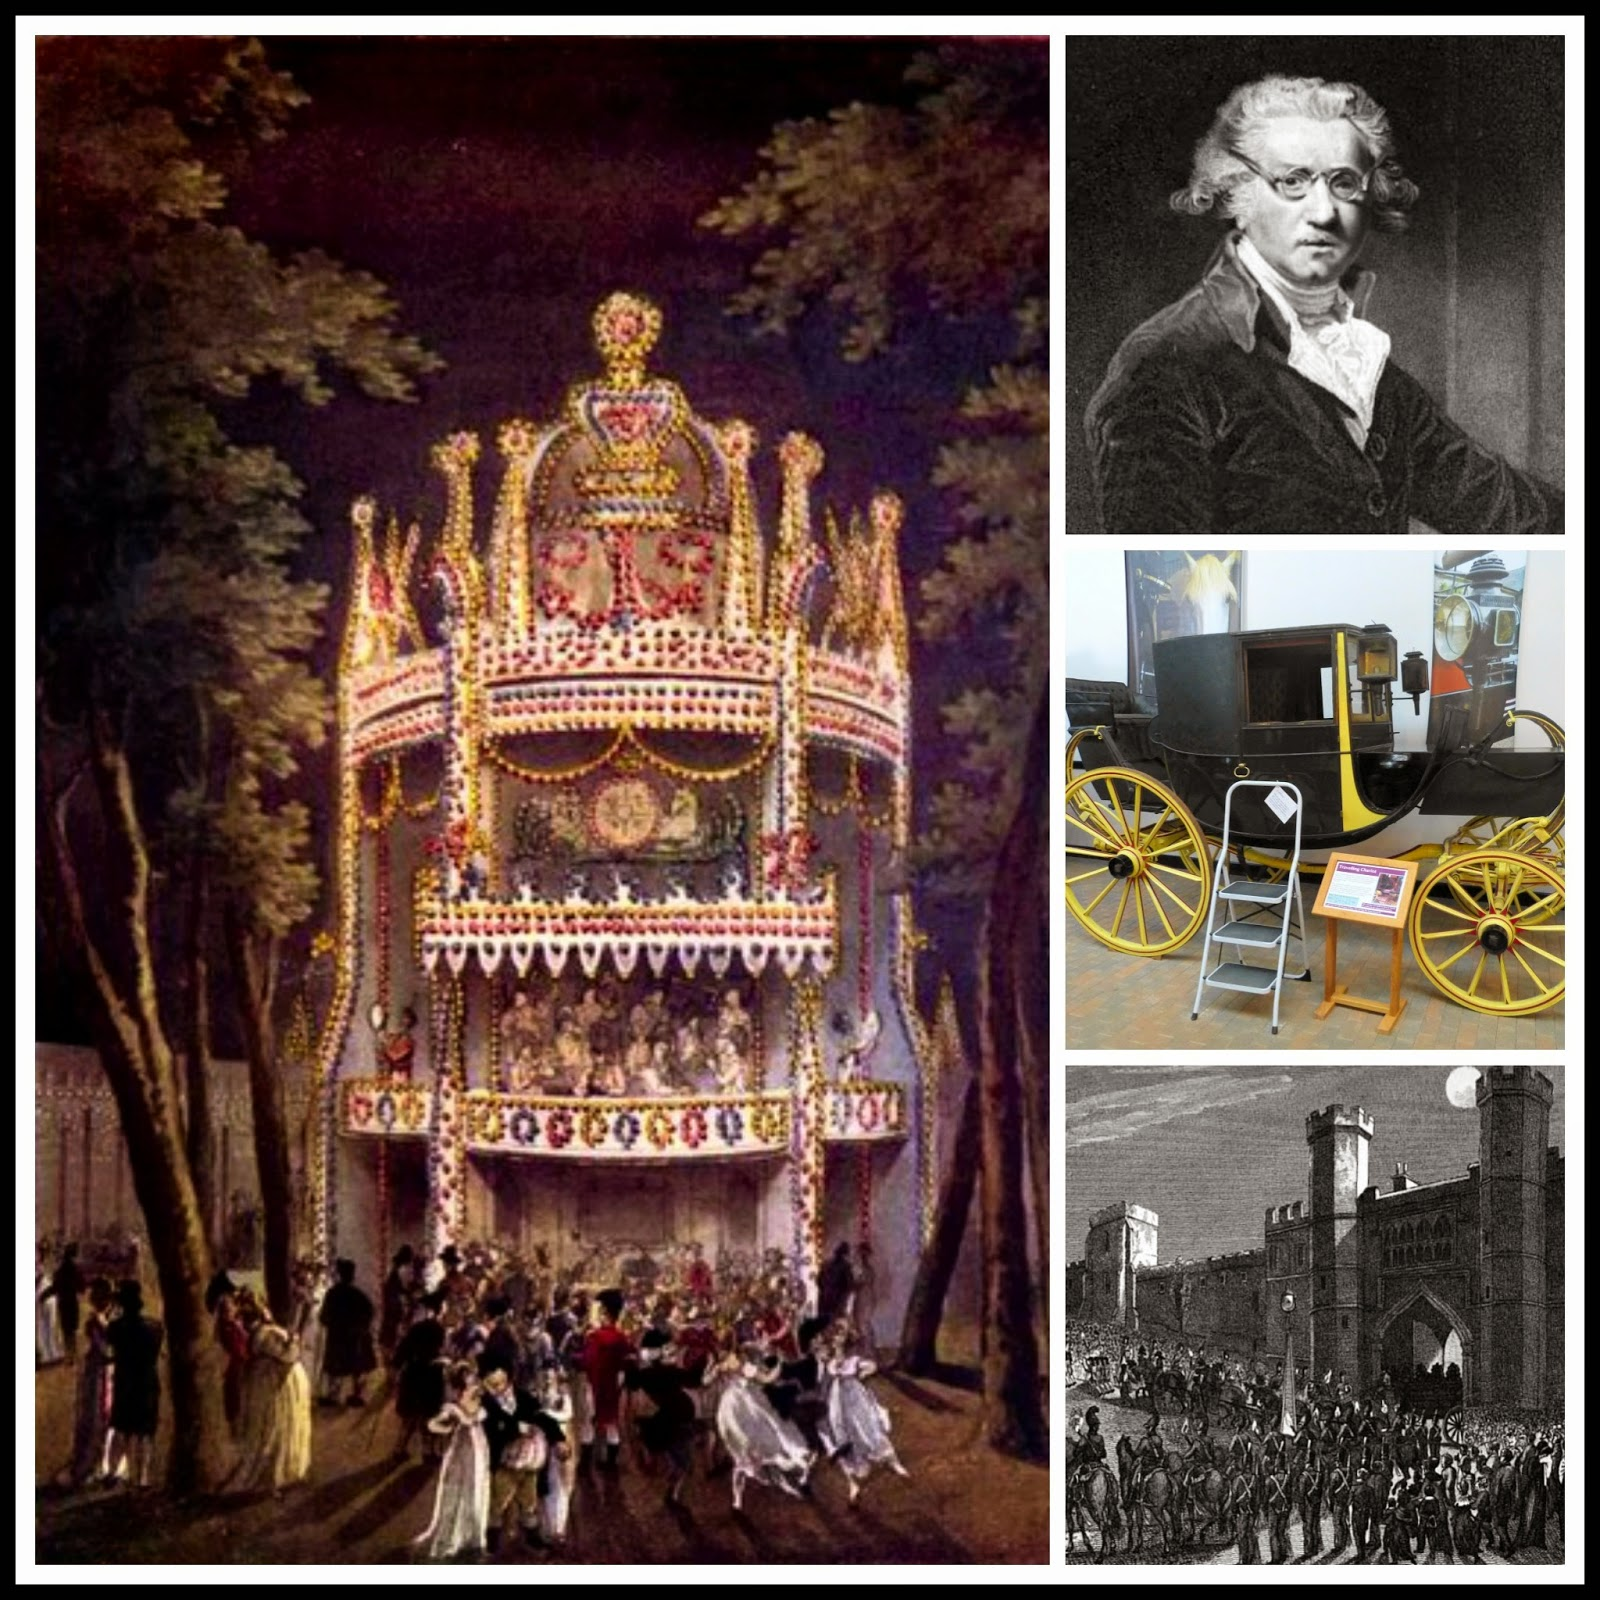 A collage - Vauxhall, Sir Joshua Reynolds, a travelling chariot, Princess Charlotte of Wales' funeral